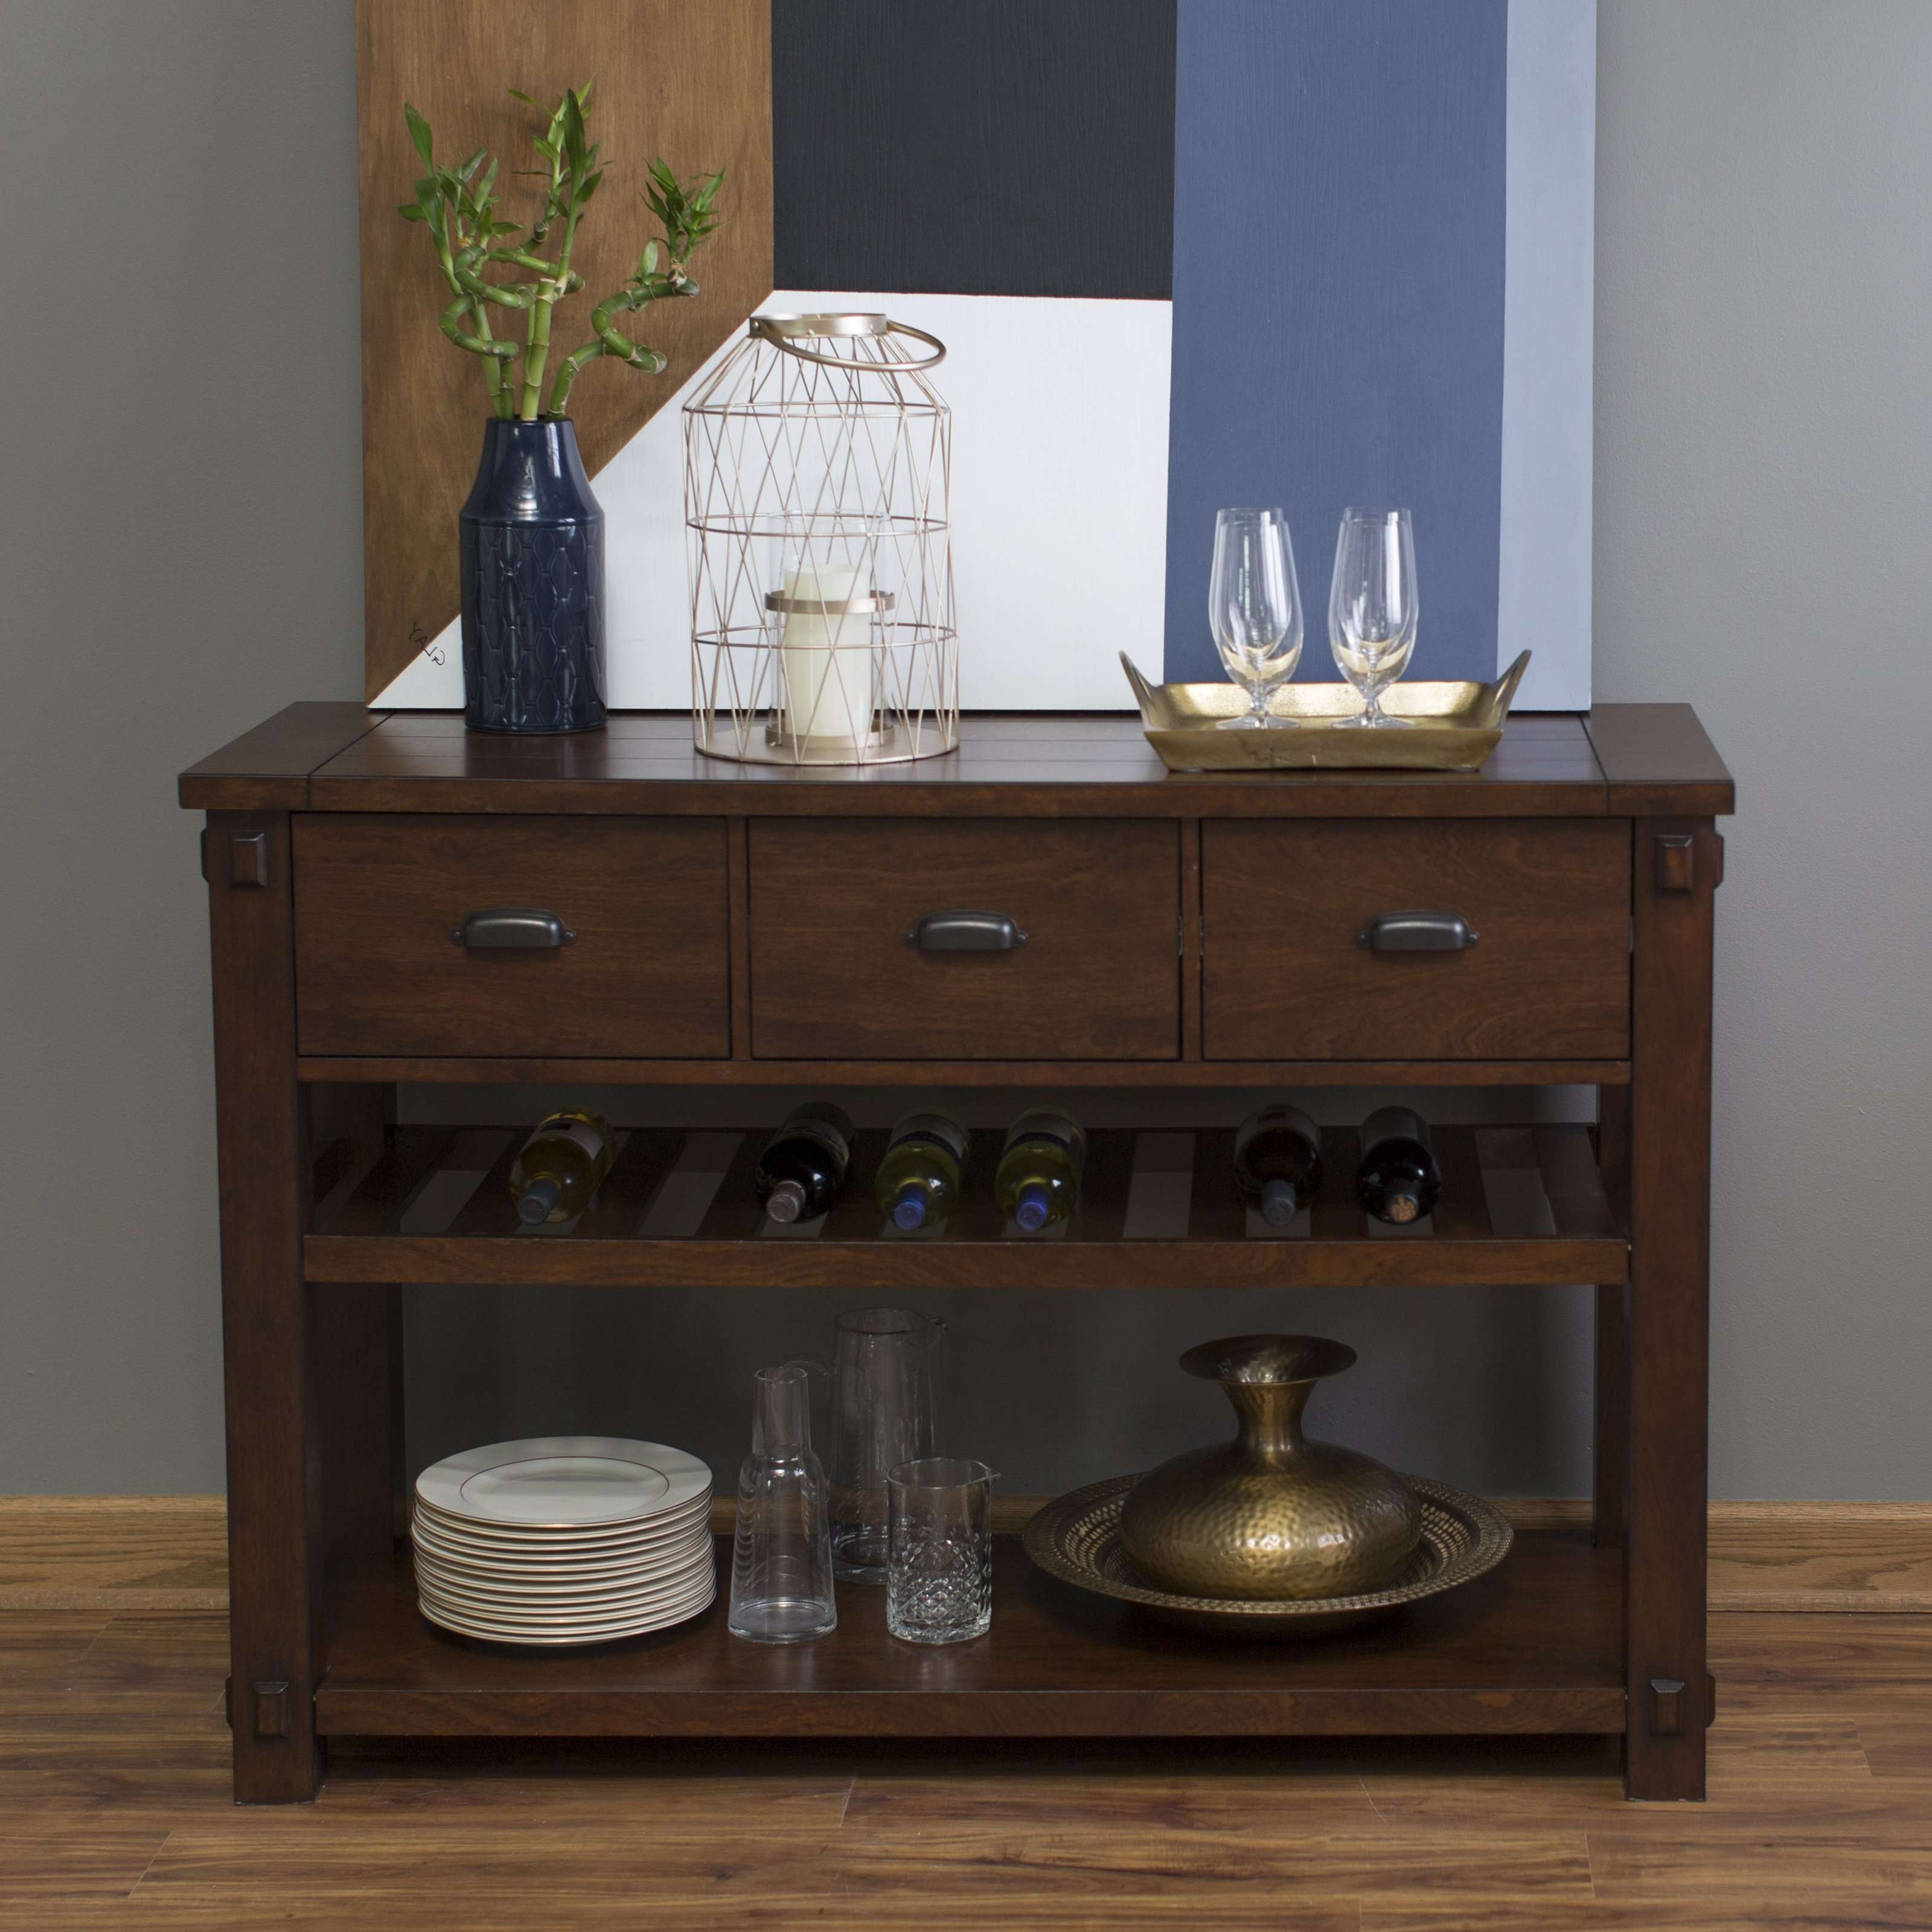 Sideboards & Buffets | Hayneedle Within Buffets Sideboards (View 19 of 20)